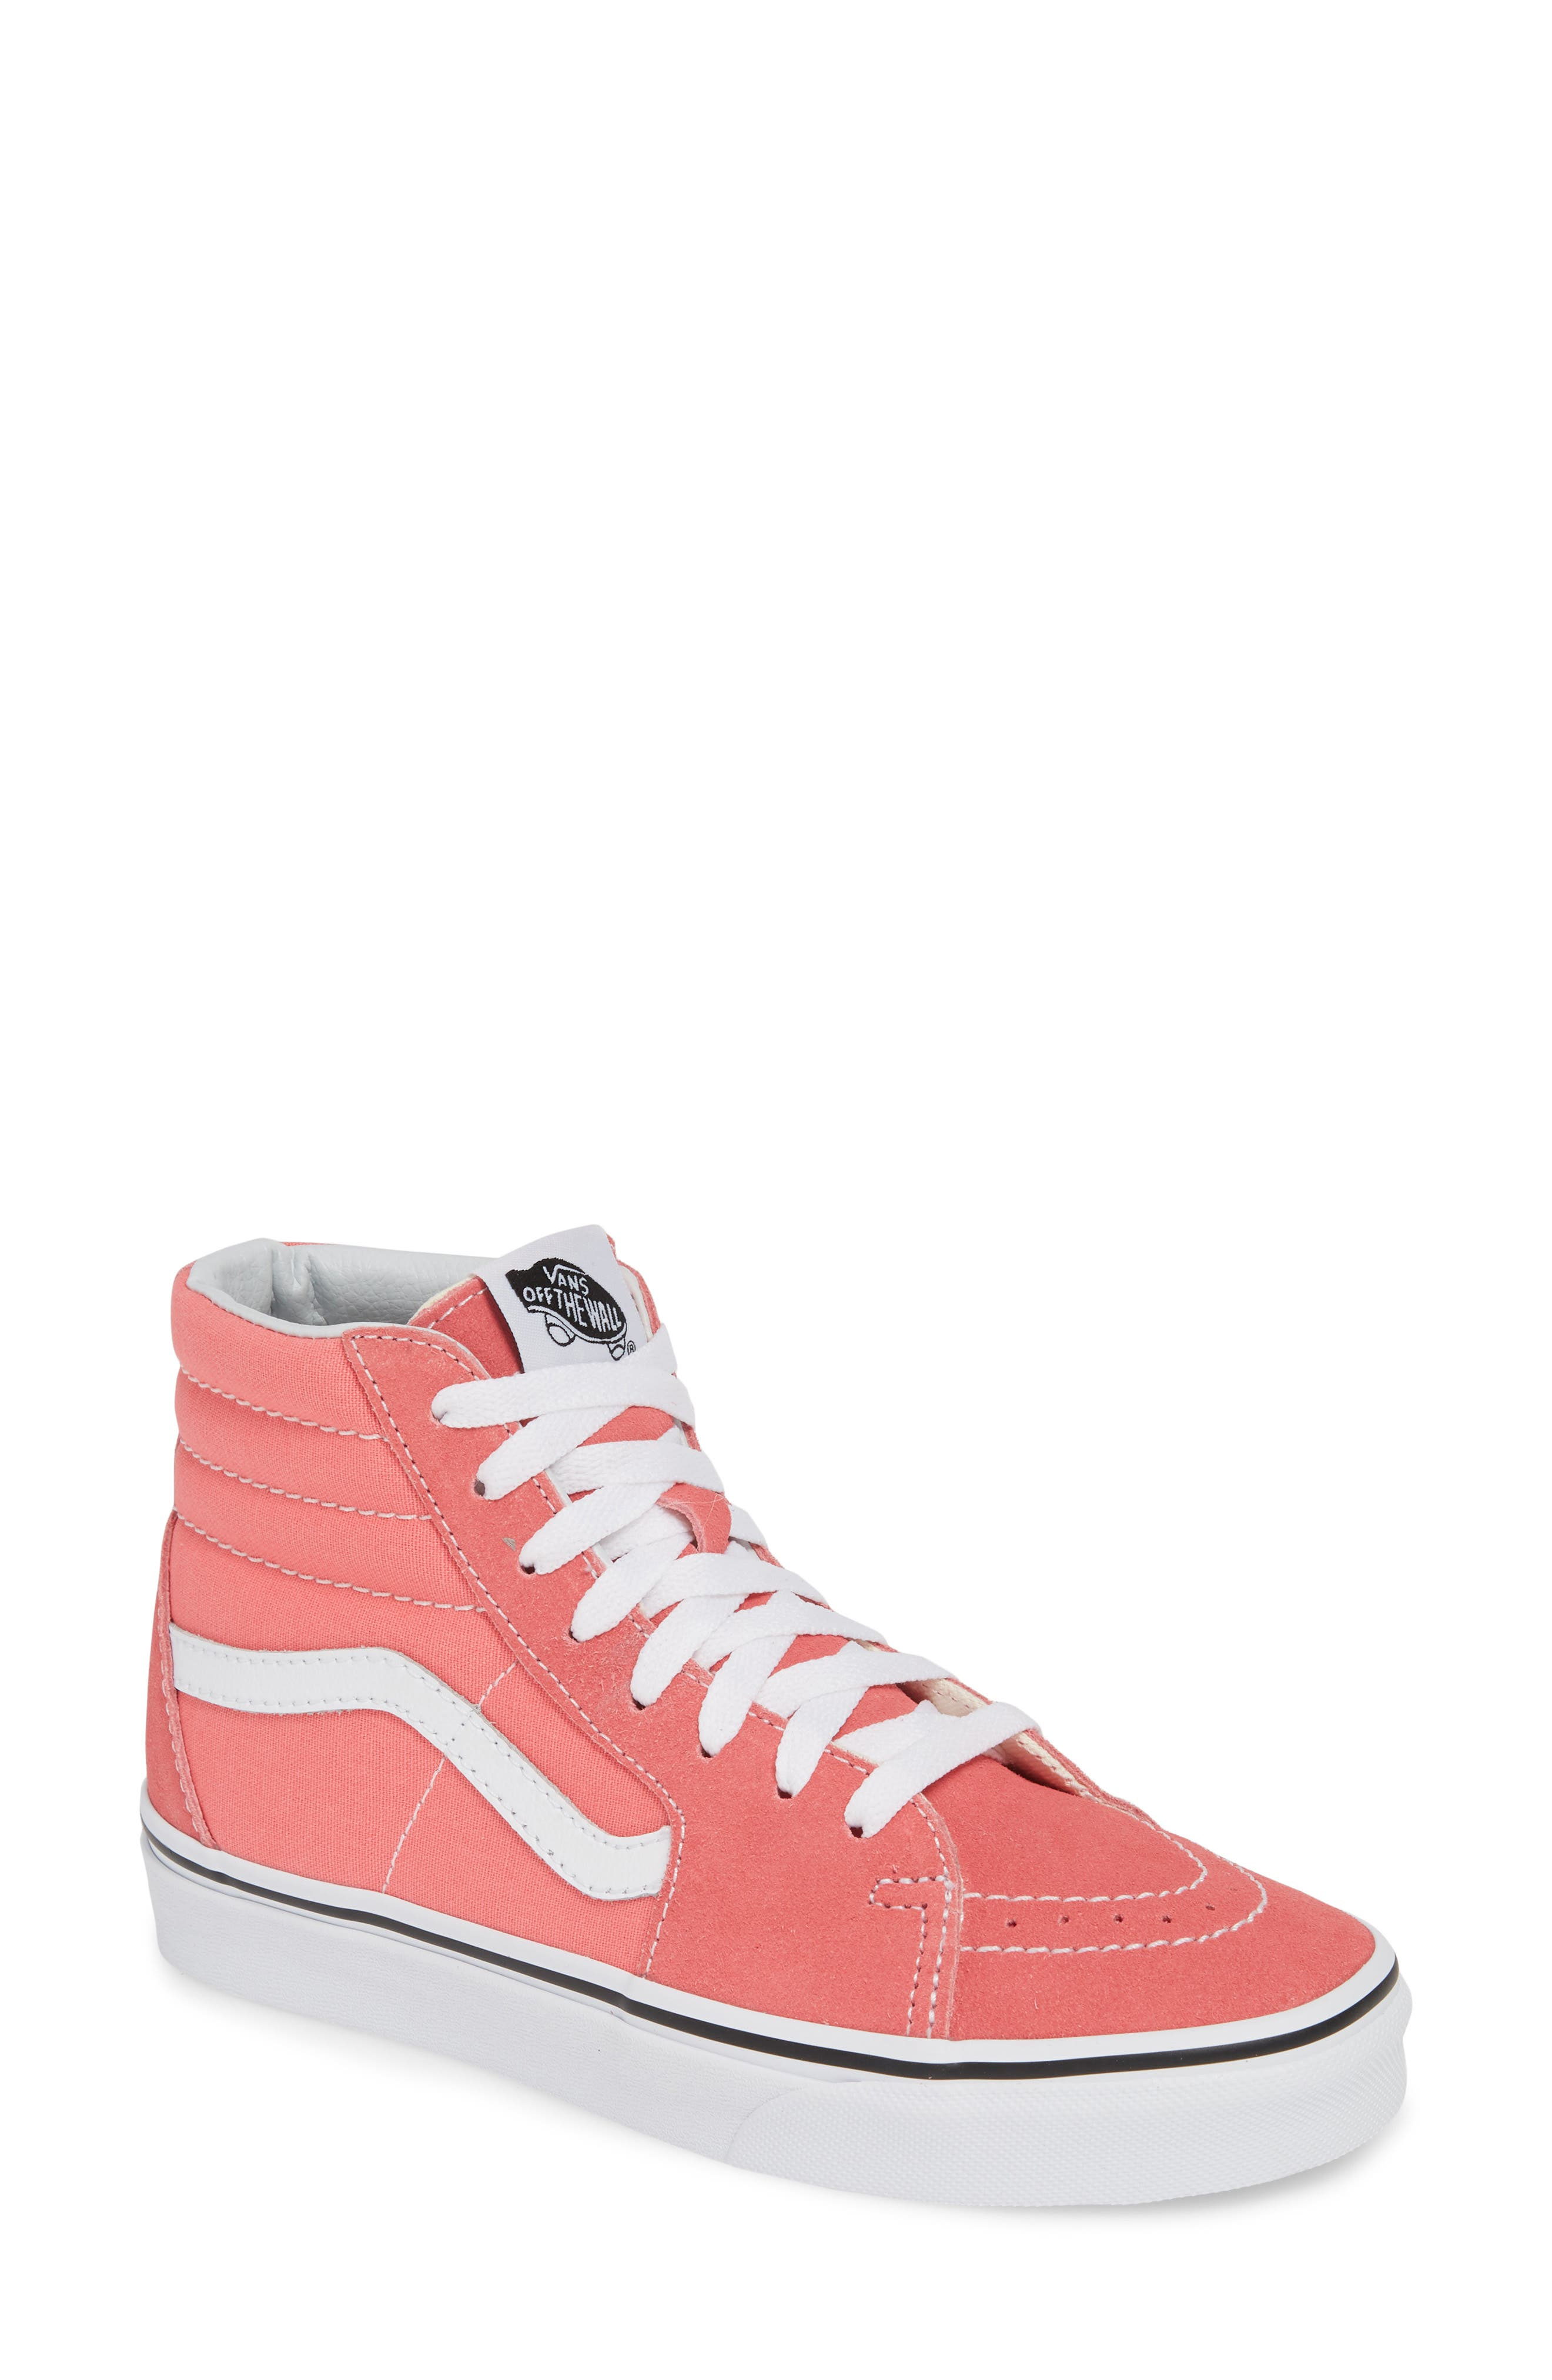 5abc116eb0e High Tops  High-Top Sneakers for Women